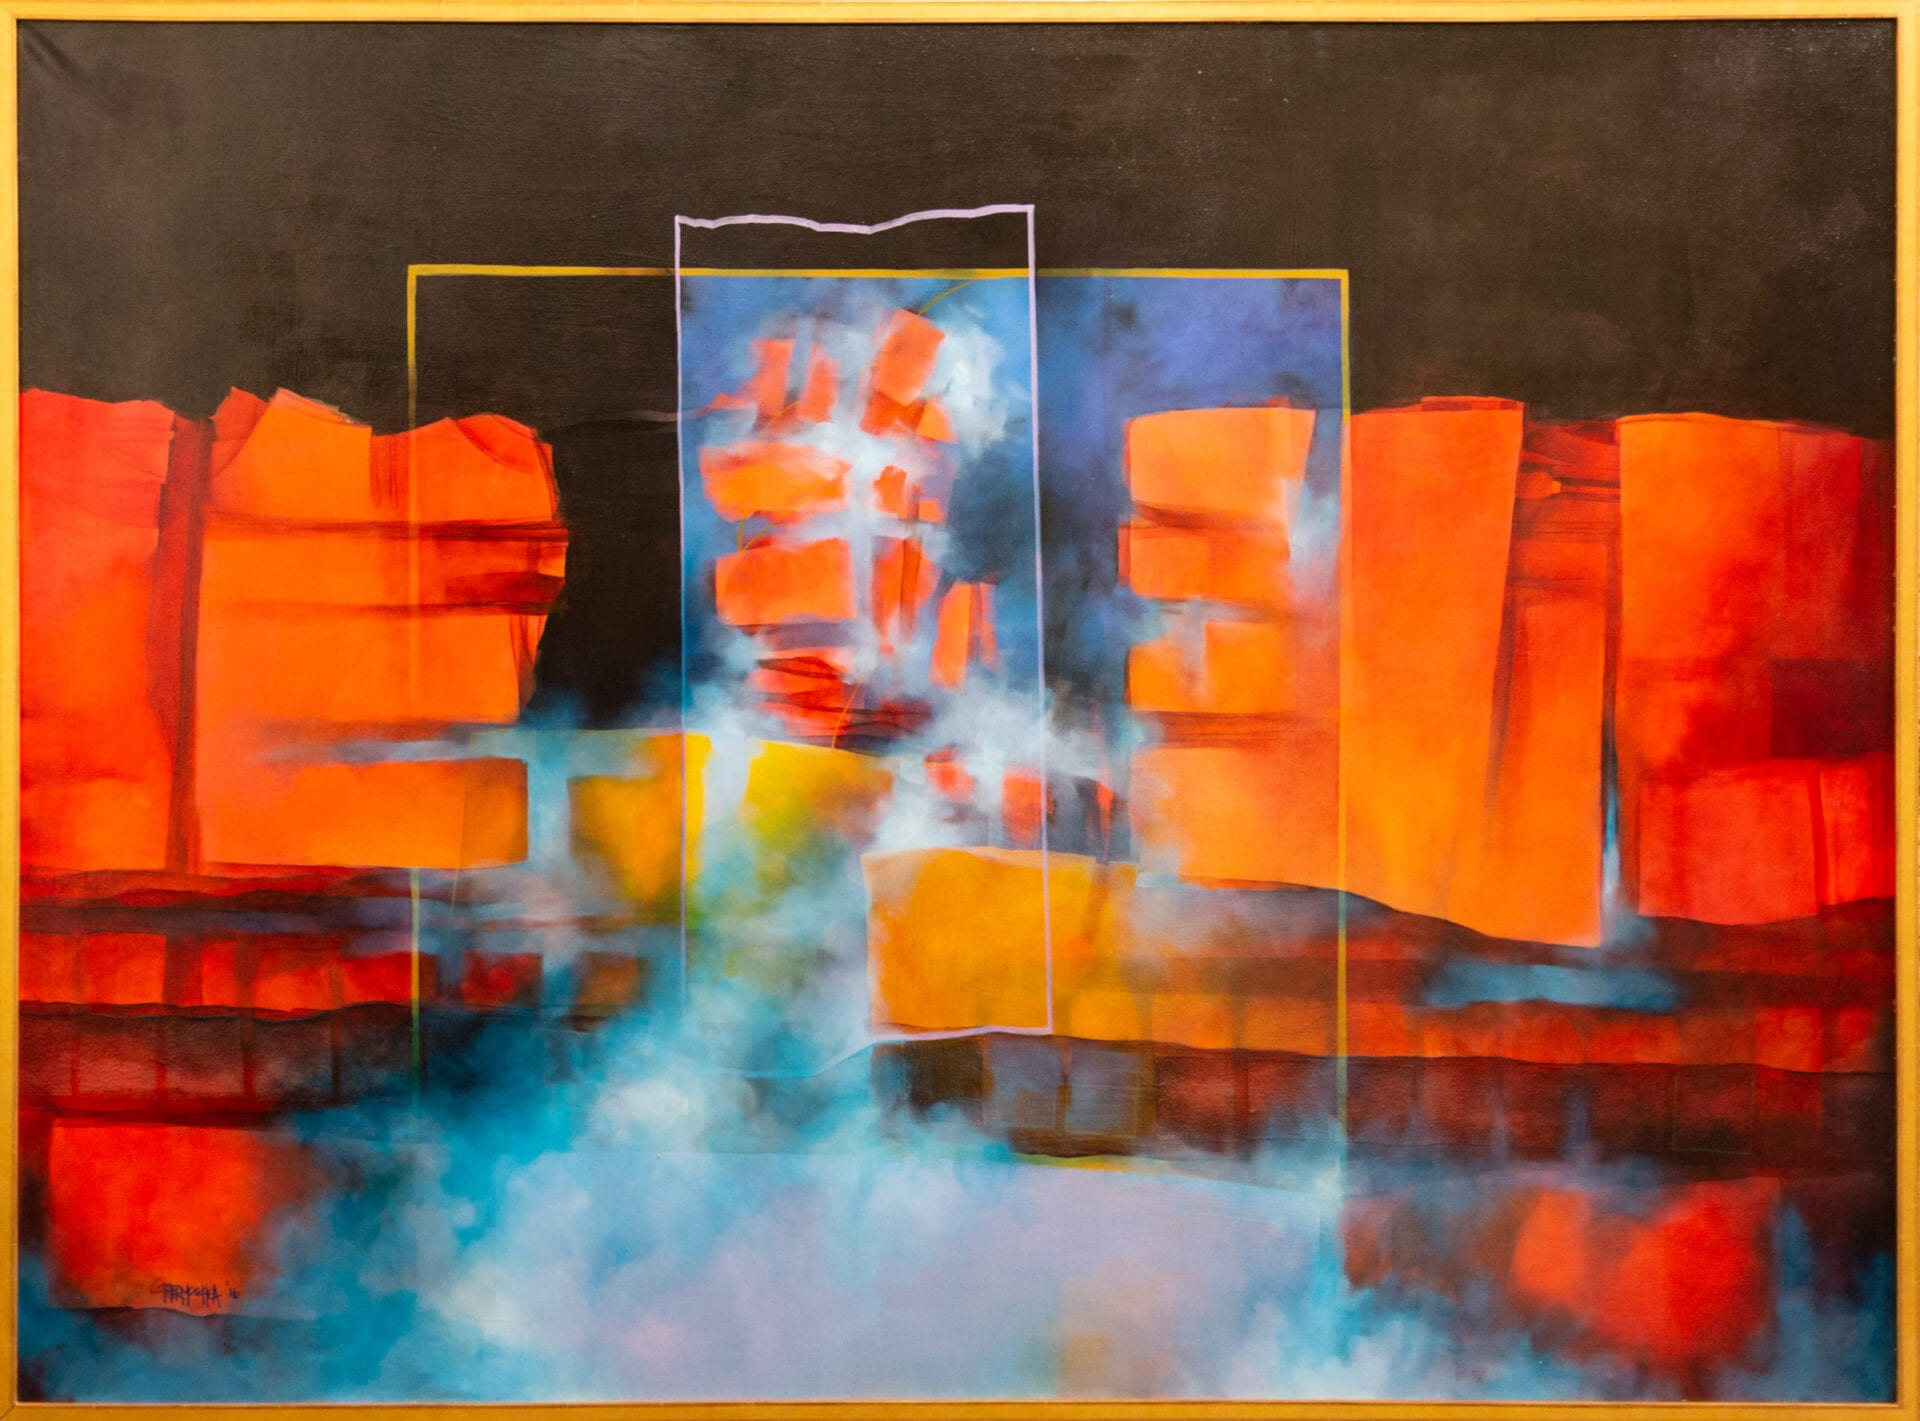 Fantasy in Reds | Guido Garaycochea | Oil | 46 x 63""